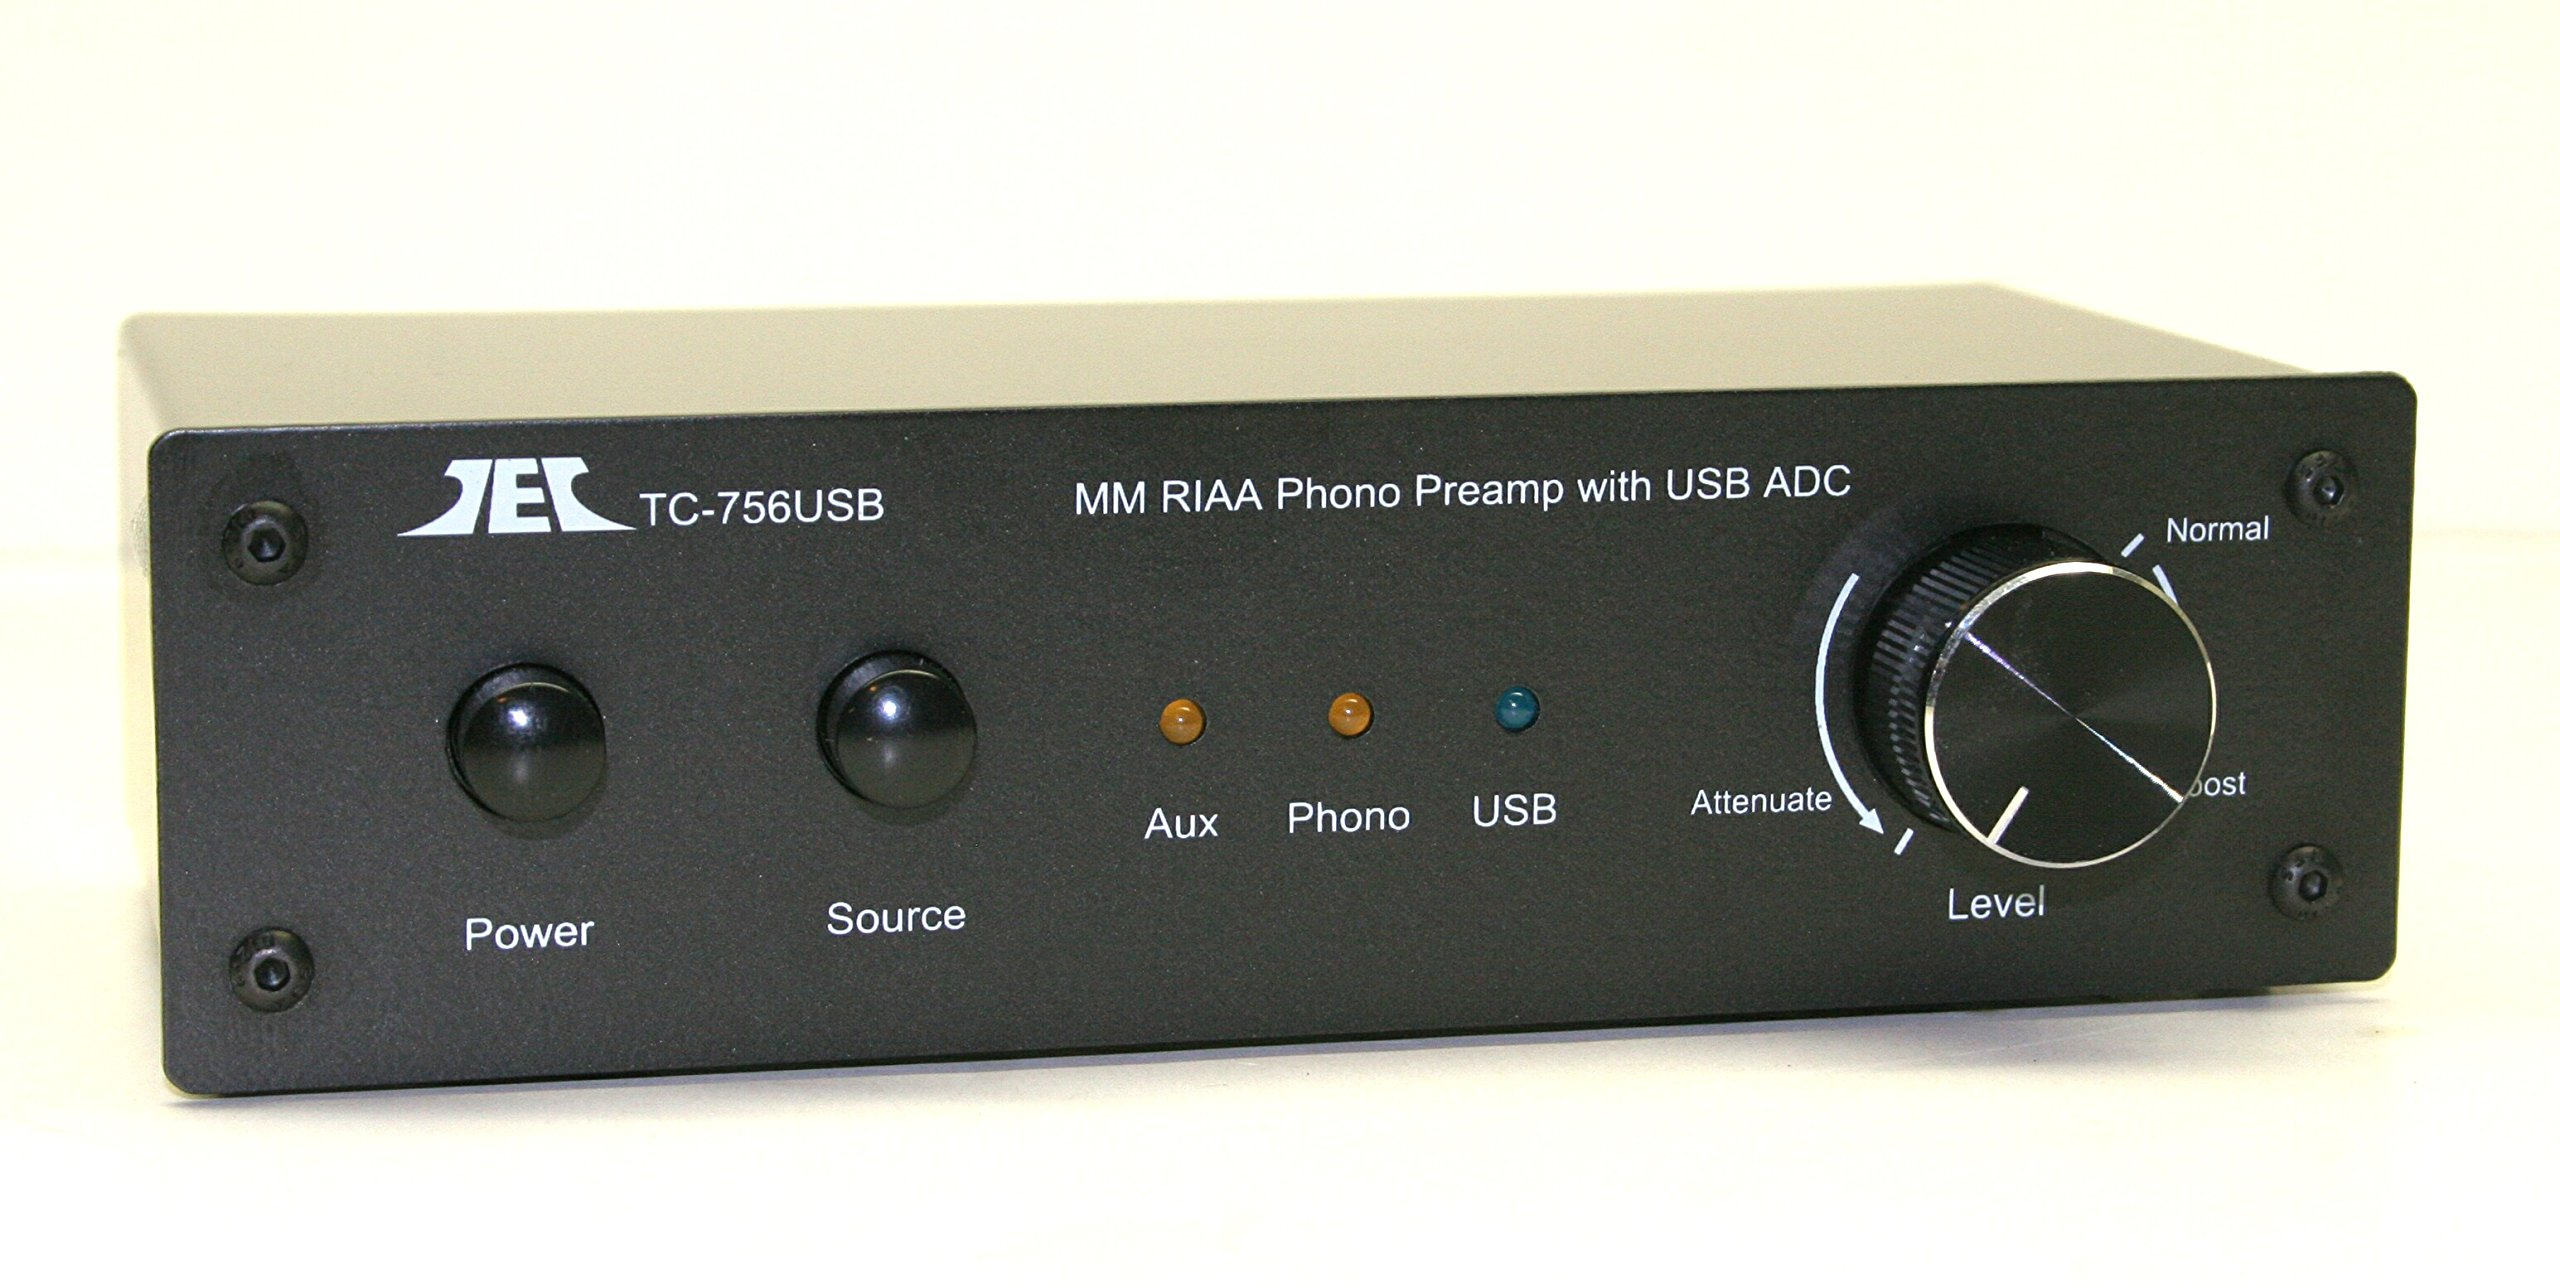 Technolink TC-756USB RIAA Moving Magnet Phono Preamp with AUX Input and USB (Computer) Output by Phono Preamps